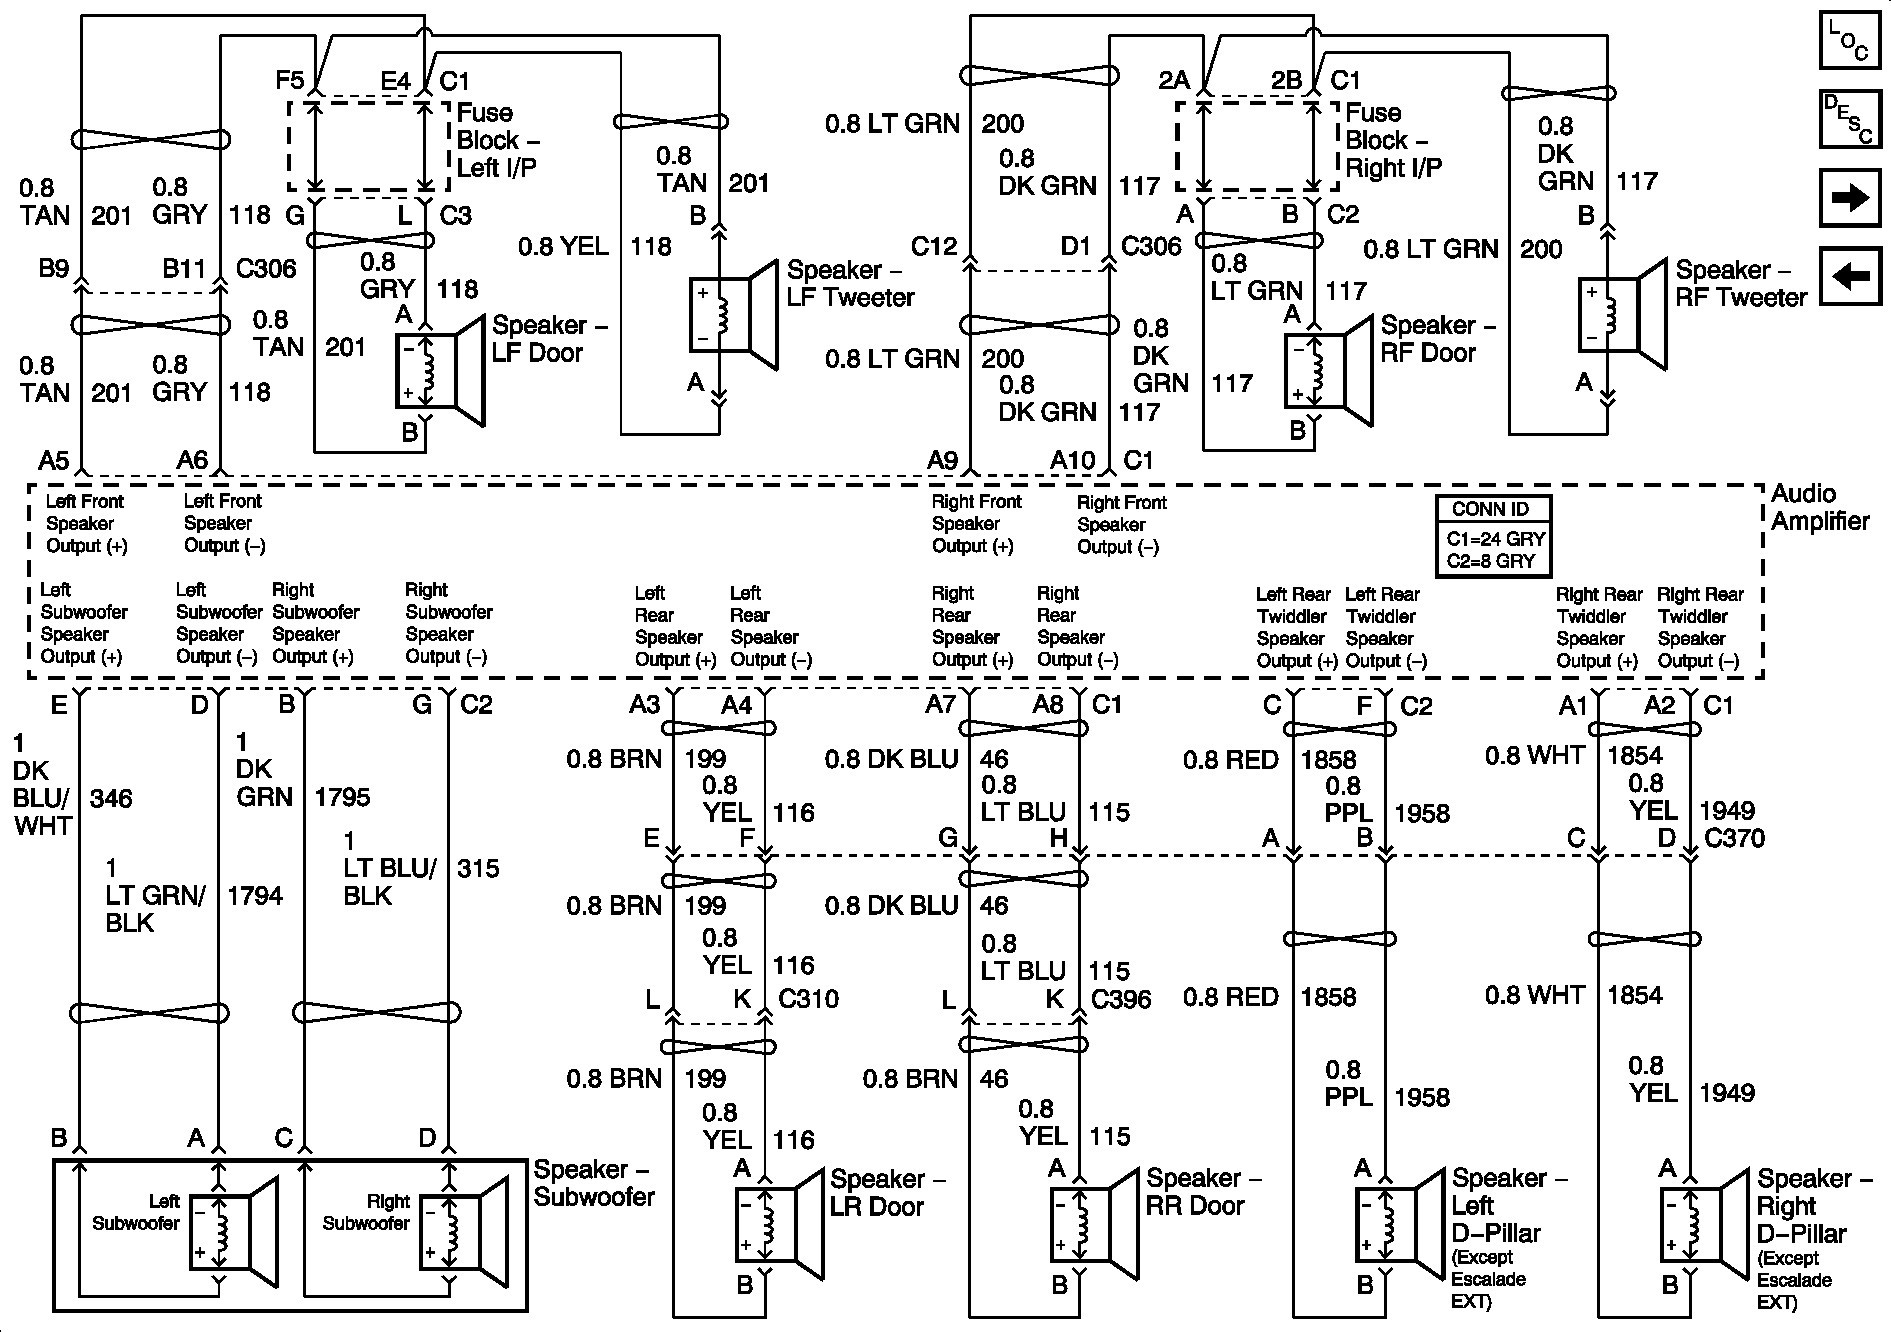 2004 Chevrolet Tahoe Stereo Wiring Diagram Worksheet And Harness Chevy Headlights Electrical Diagrams Rh Wiringforall Today 1998 Silverado Radio